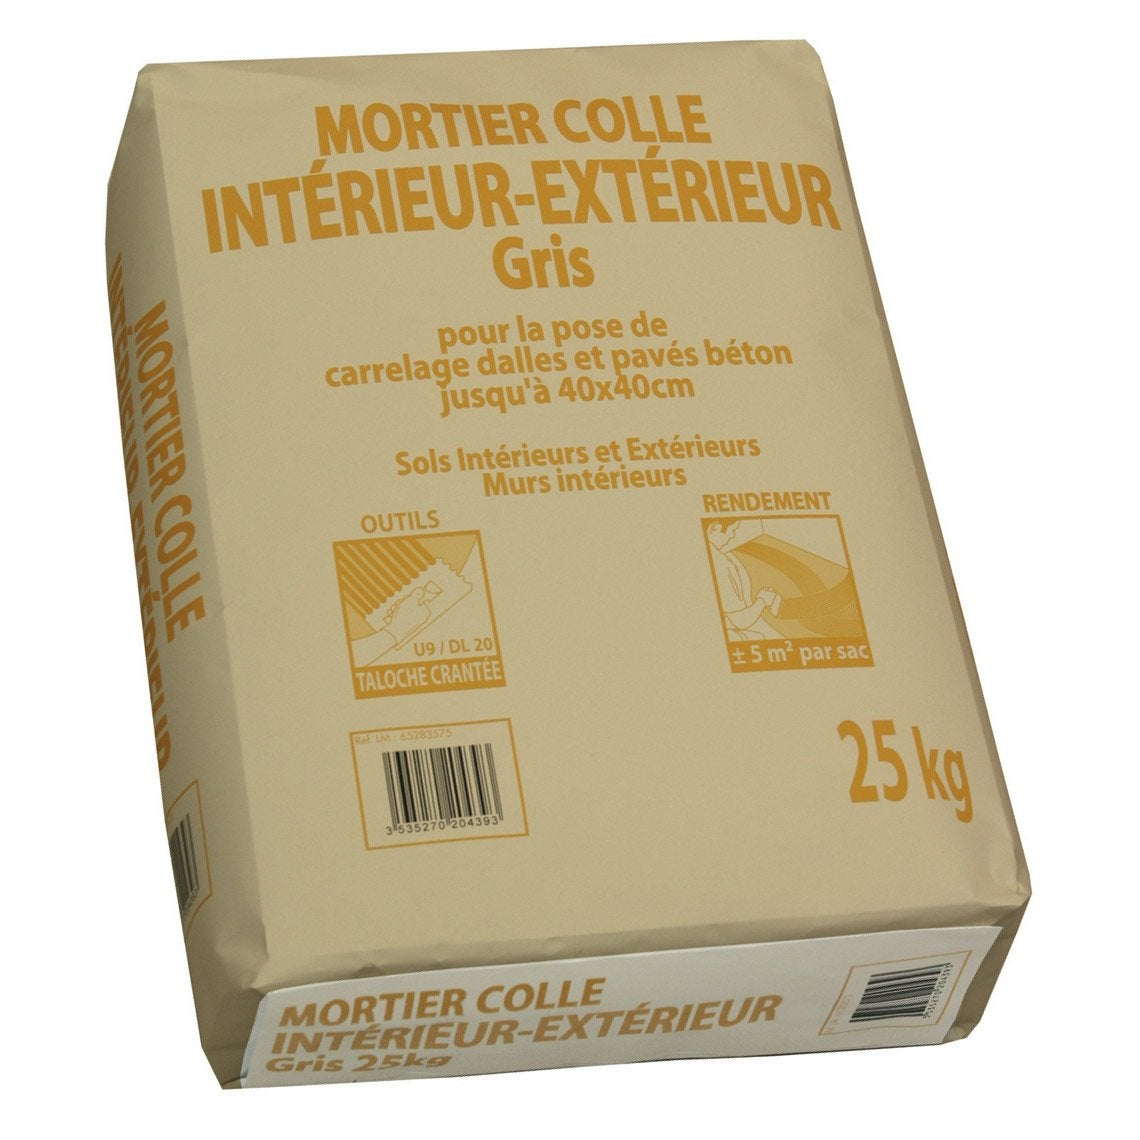 Ciment colle pour carrelage 28 images mortier colle for Ciment colle pour carrelage piscine